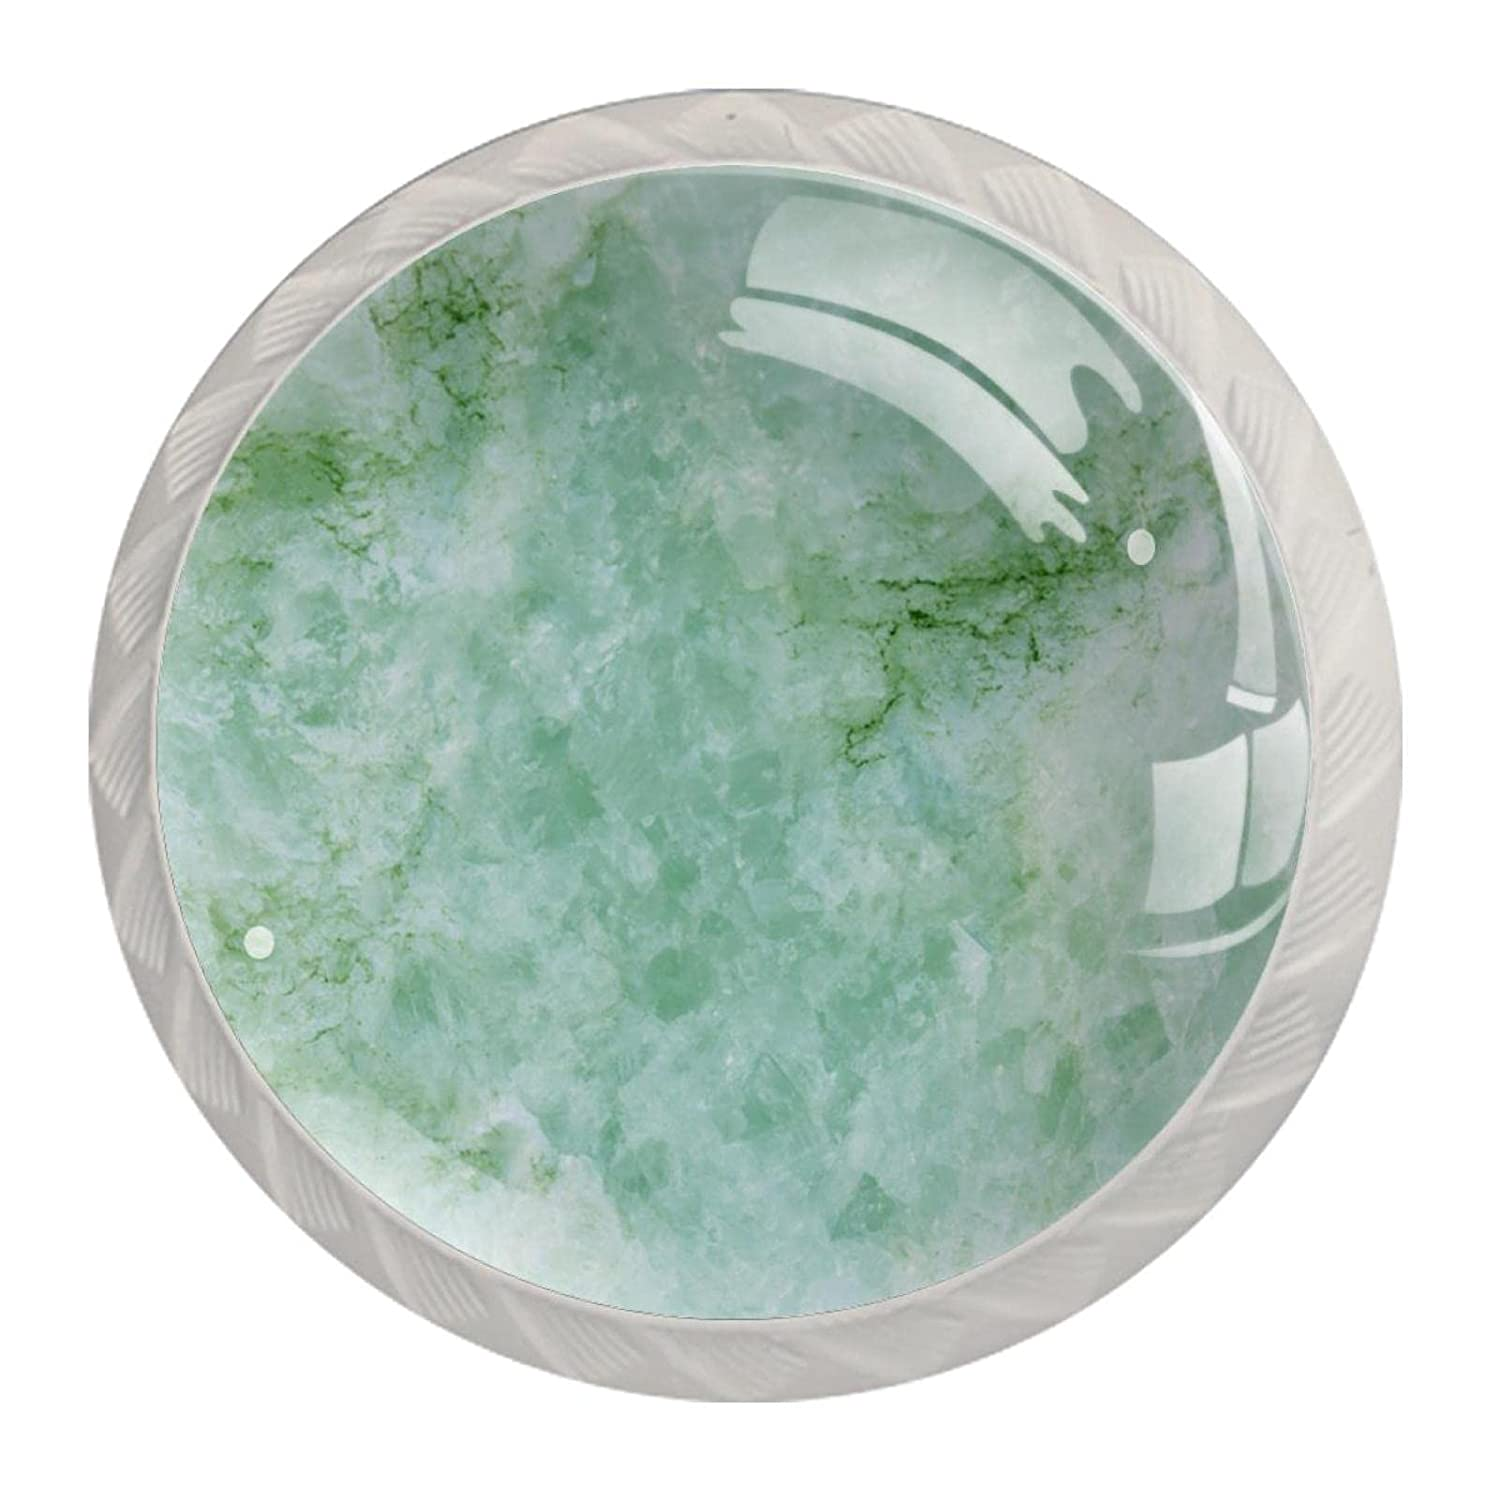 Cabinet Knobs Cheap mail order New color sales Sea Water Green 4 Crystal Round Glass Colorful pcs